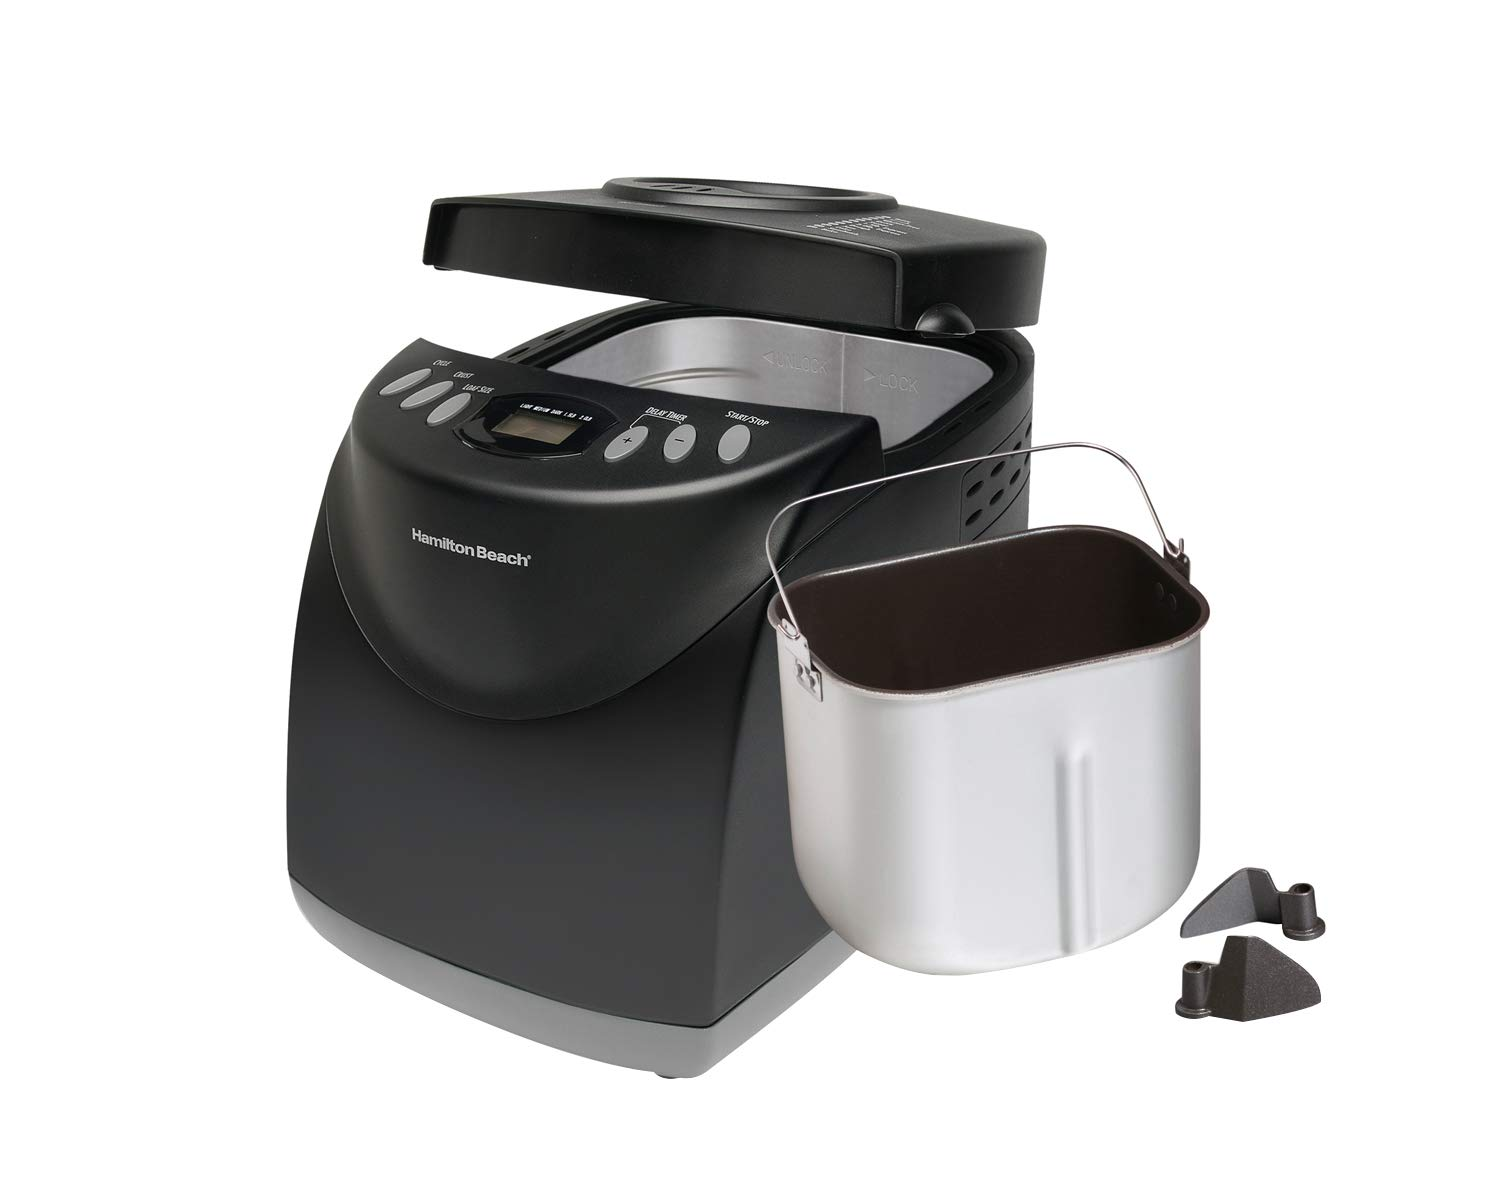 The Best cheap bread machine - Our pick